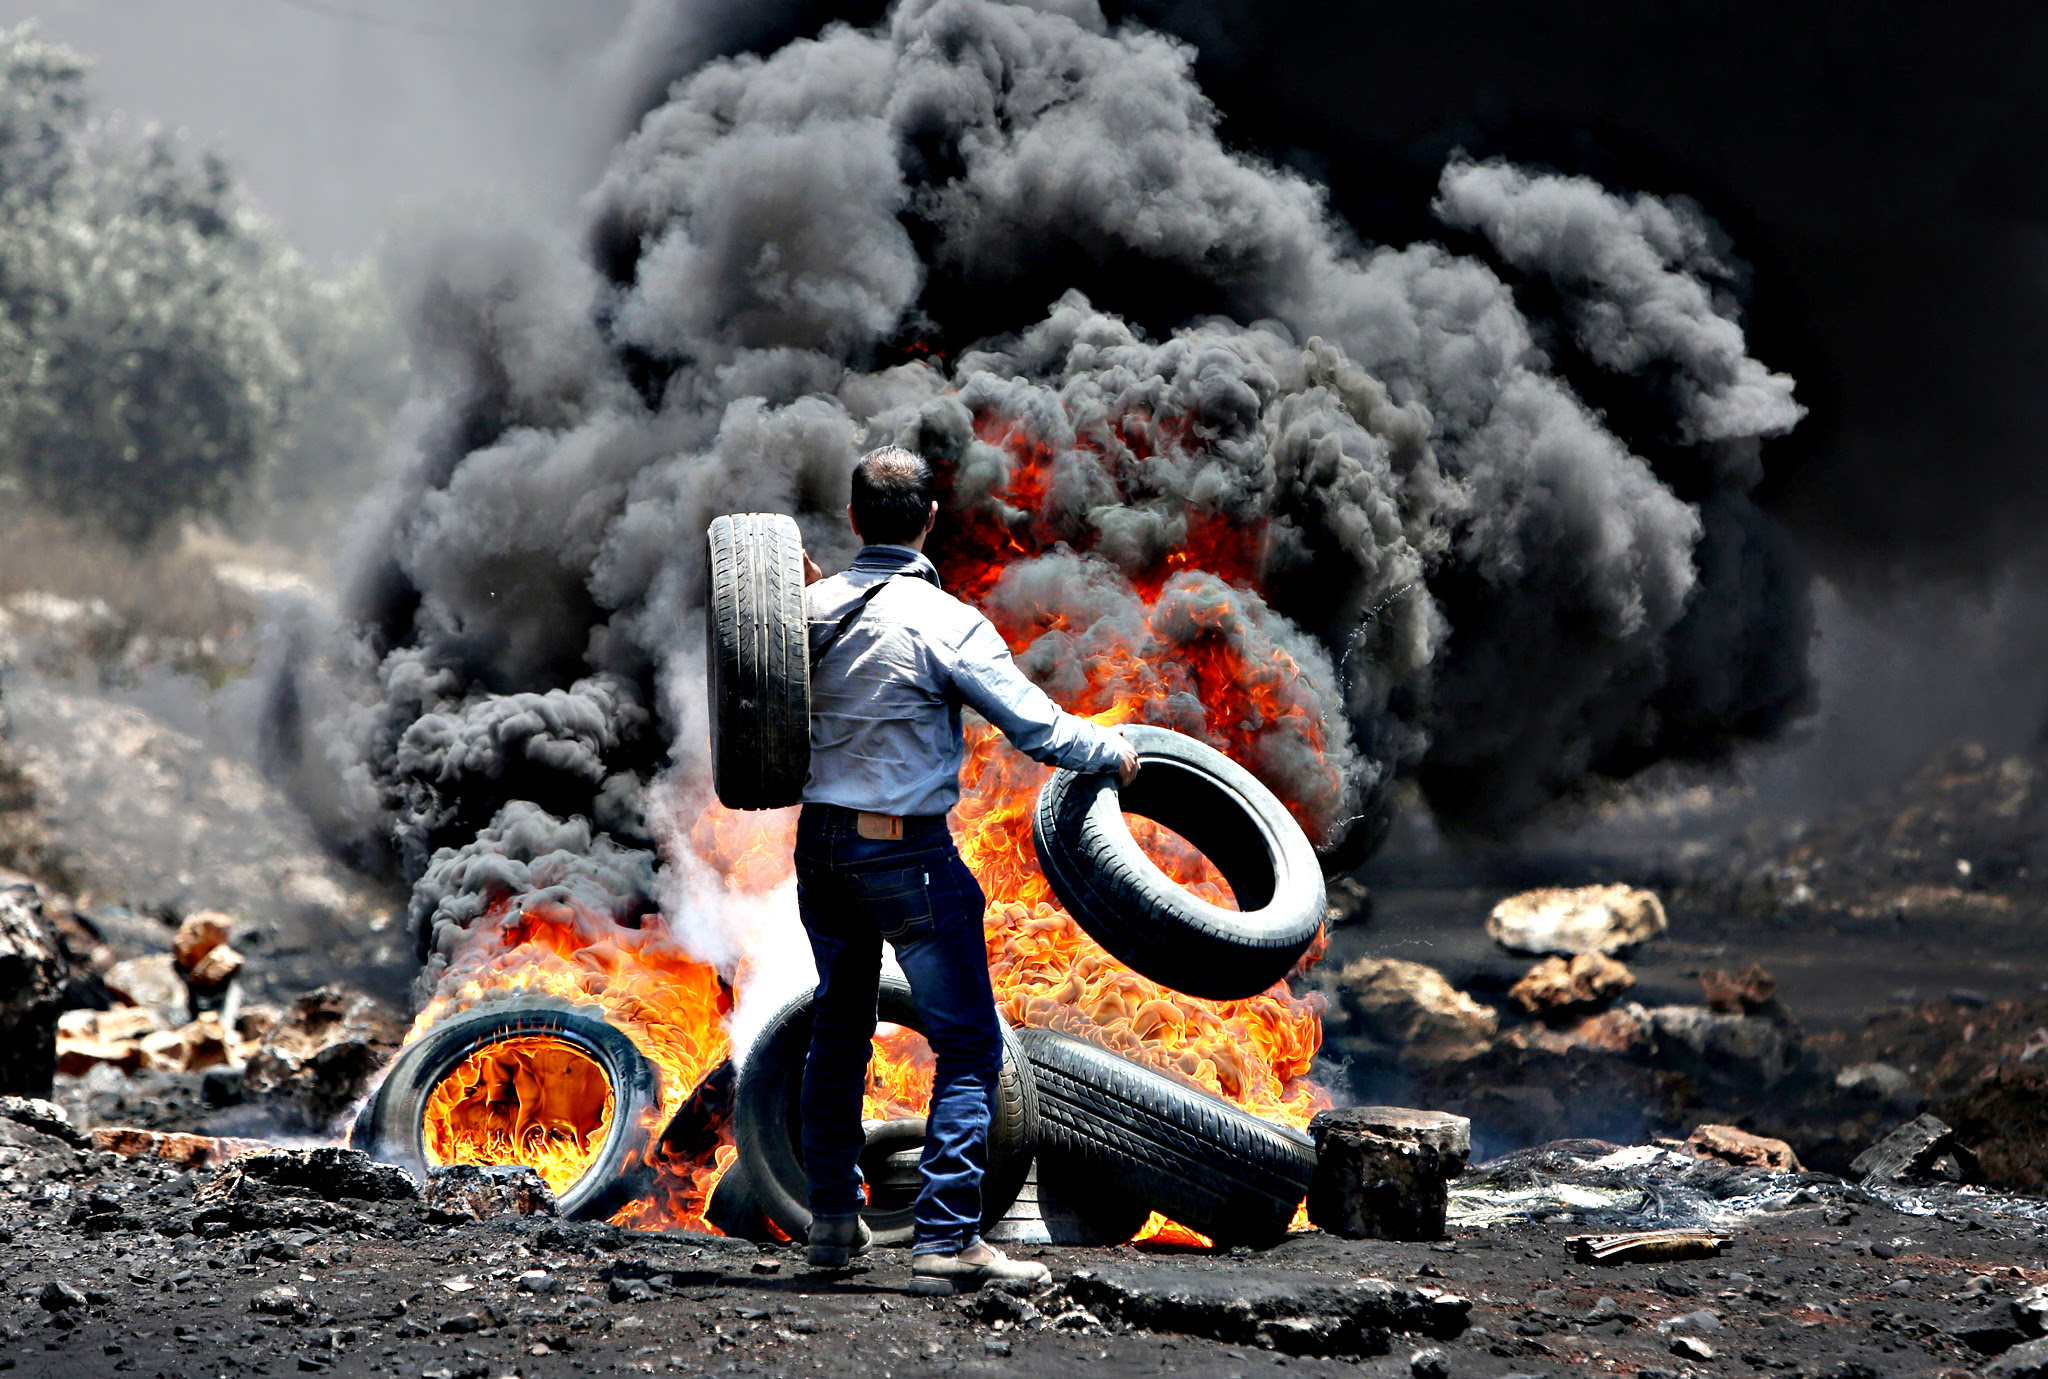 A Palestinian protester throws tires into a fire during clashes with Israeli security forces following a demonstration against the expropriation of Palestinian land by Israel in the village of Kfar Qaddum, near Nablus, in the occupied West Bank, on June 19, 2015.